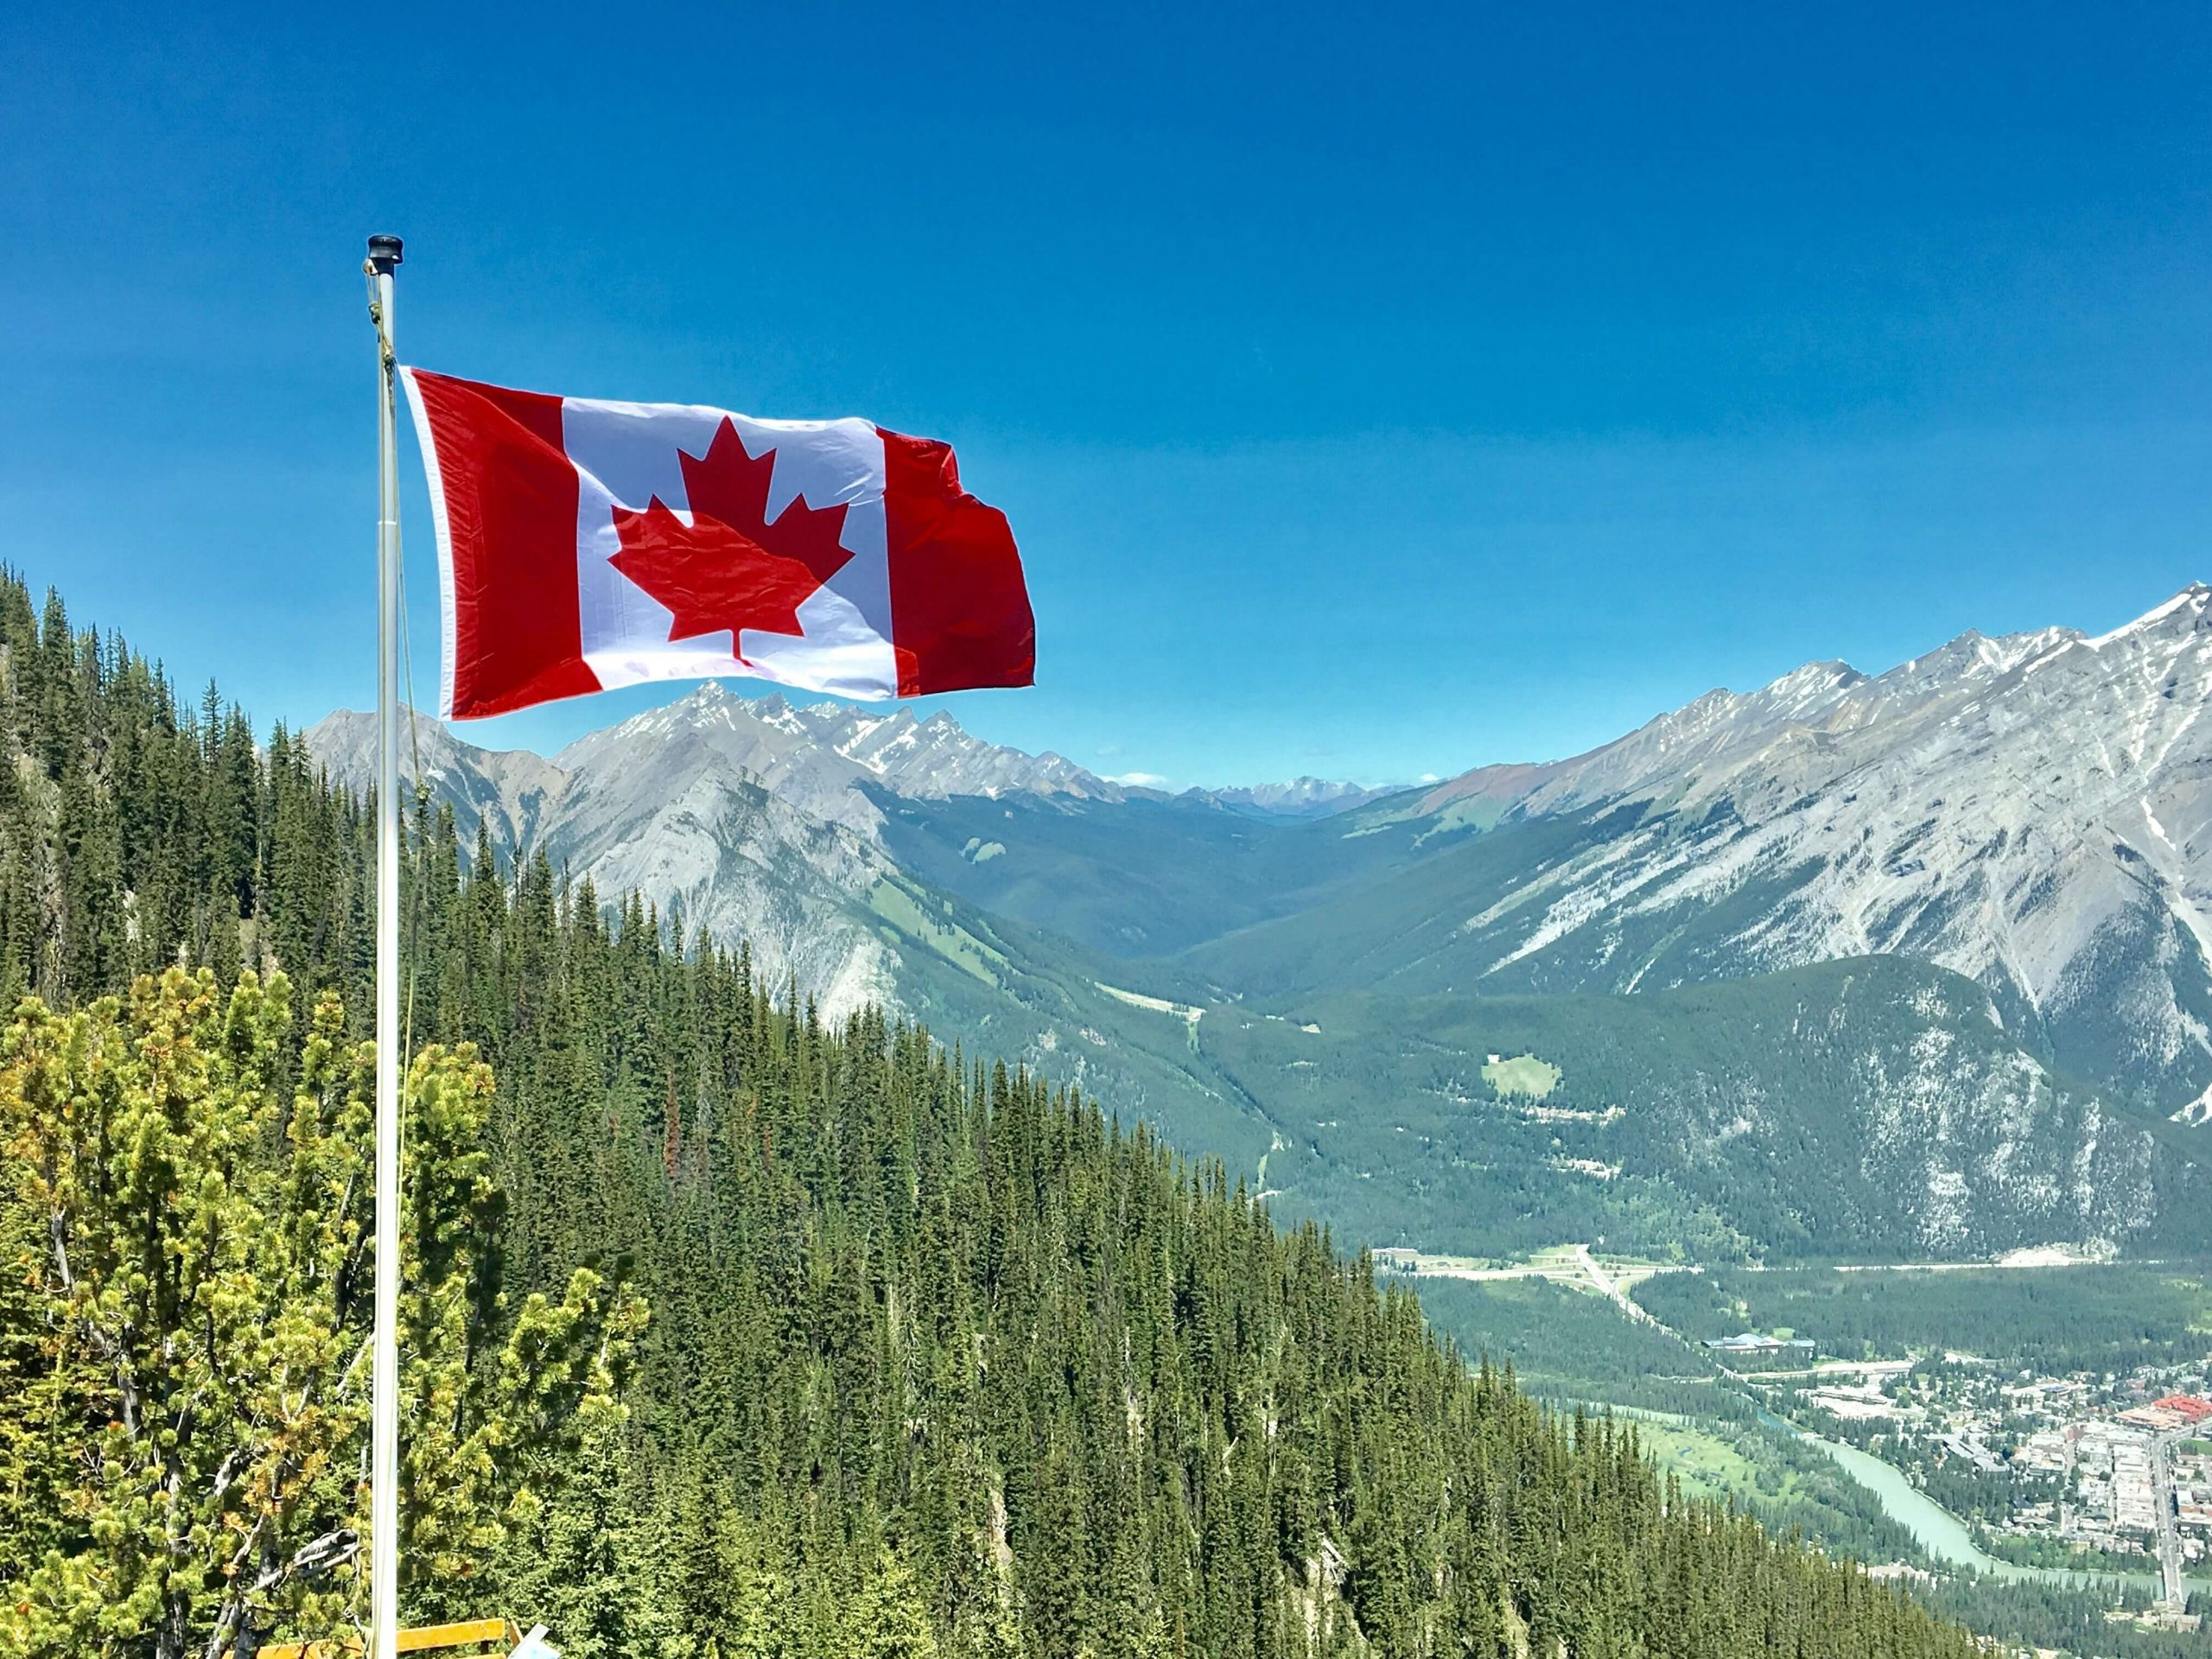 Canada has the 9th Biggest Economy in the World